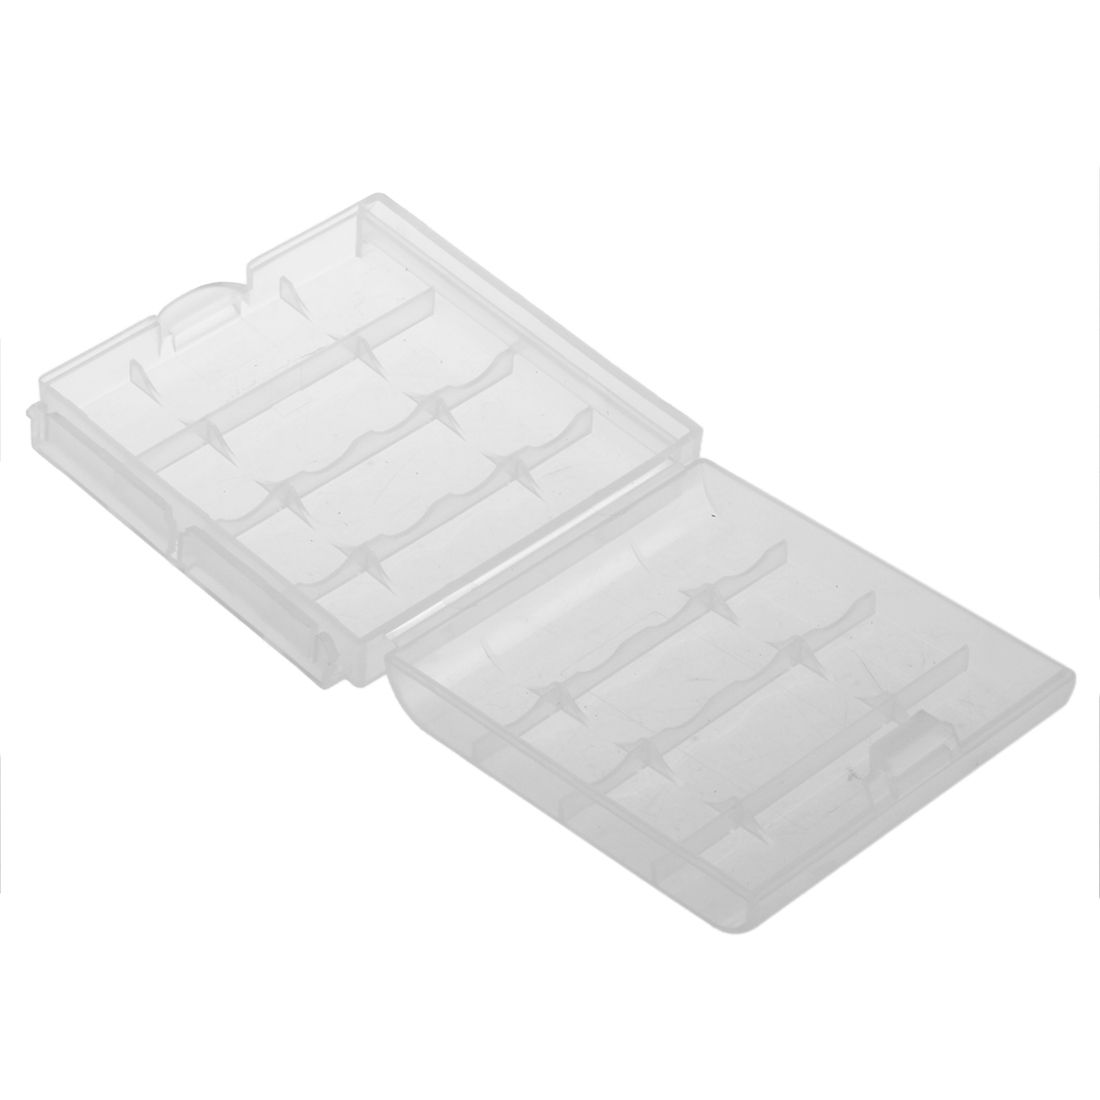 Clear Hard Battery Box Storage Case Holder For 4 Aa Aaa Rechargeable Batteries Cheap Storage Storage Boxes Organization